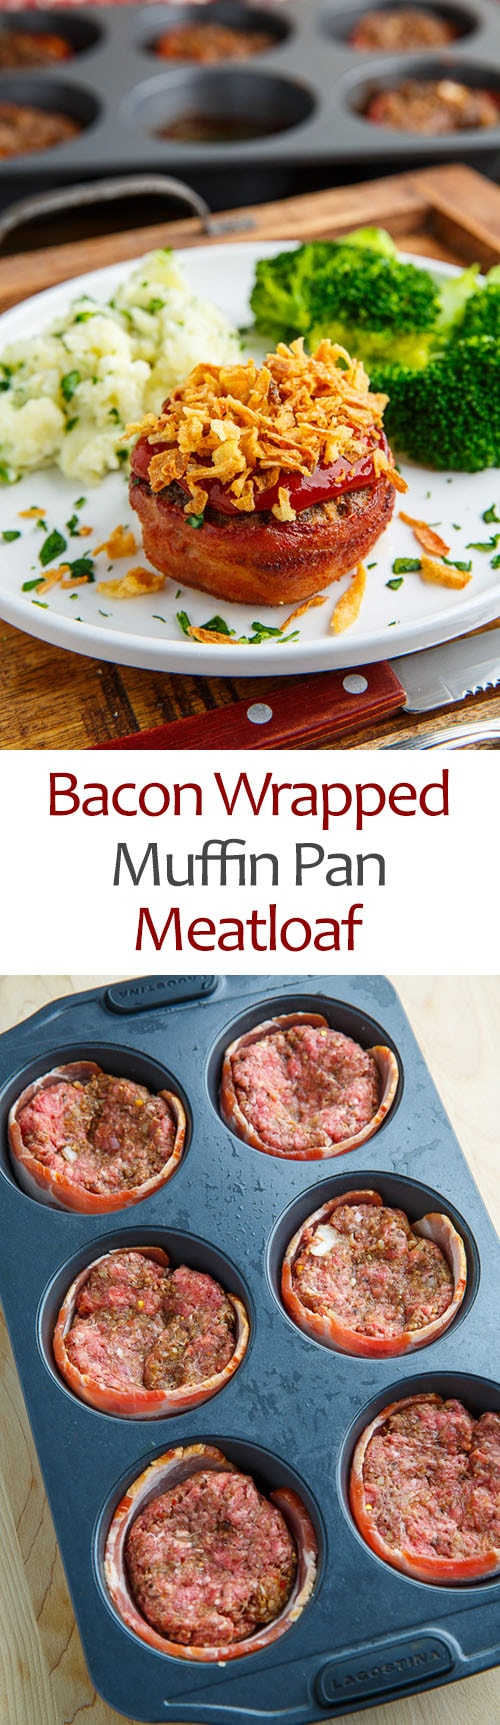 Bacon Wrapped Muffin Pan Meatloaf